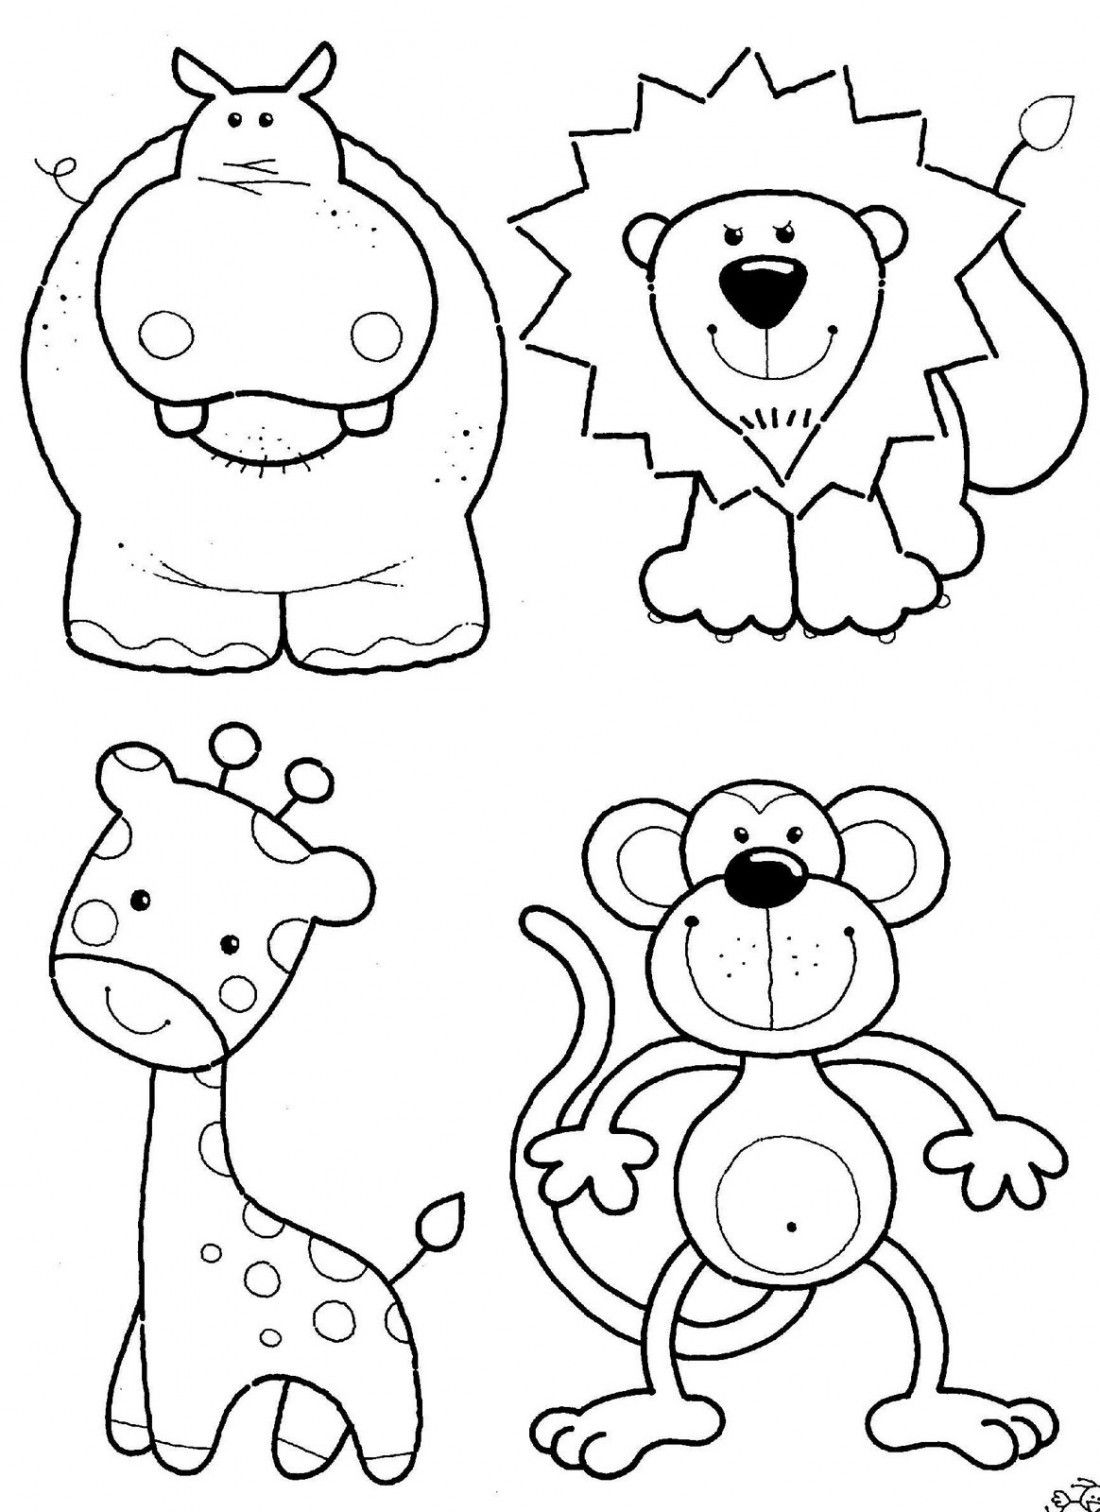 Free coloring pictures of animals for kids - Animal Coloring Pages For Kids Free